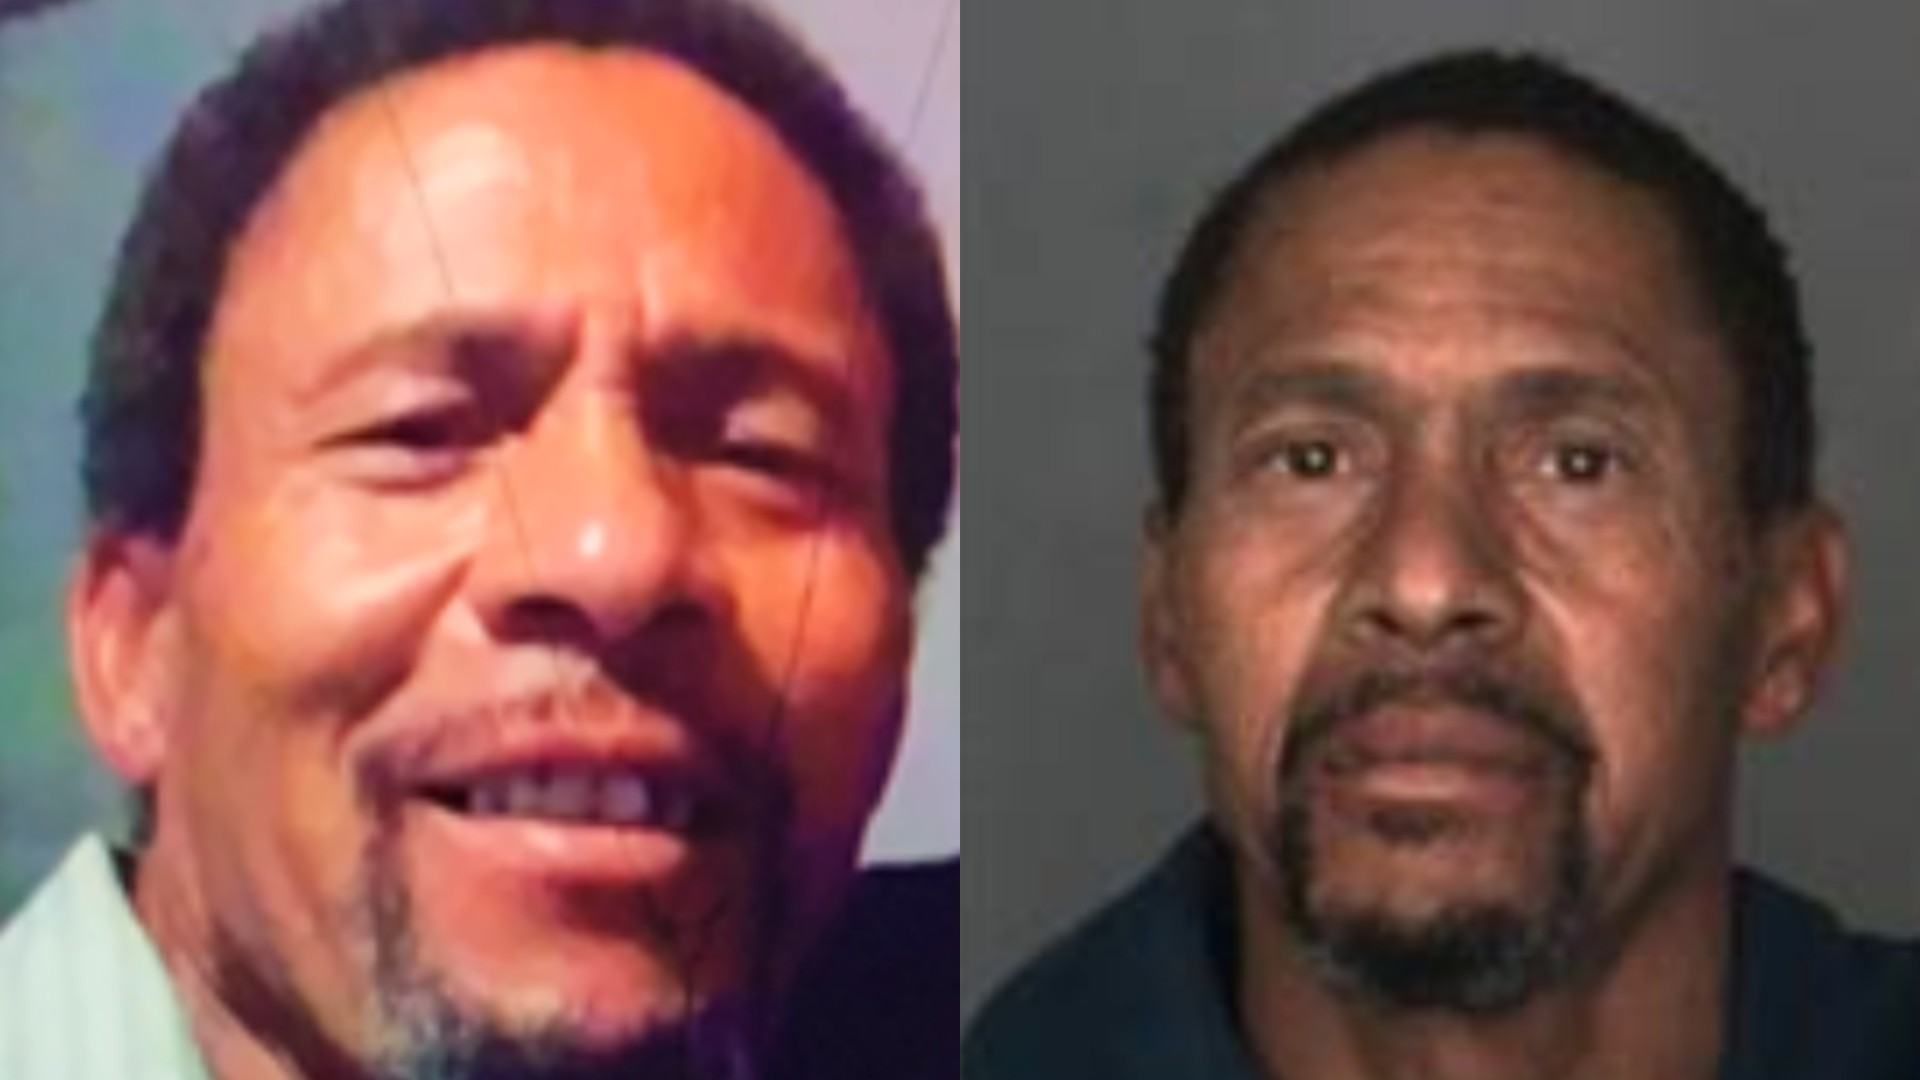 Eric Otto White is seen in photos released by the Redlands Police Department on Aug. 26, 2020.